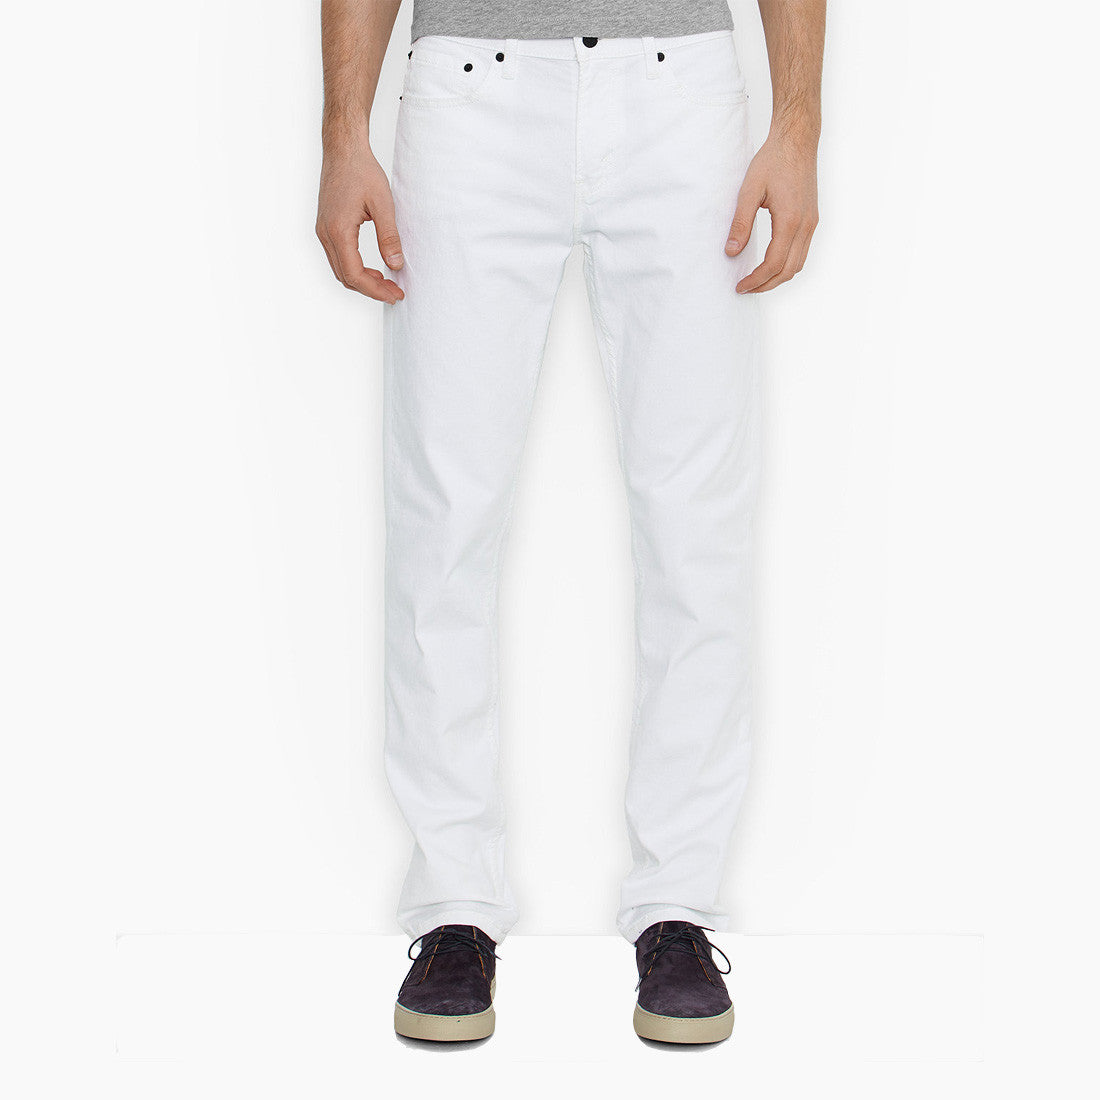 511 - White Bull Denim